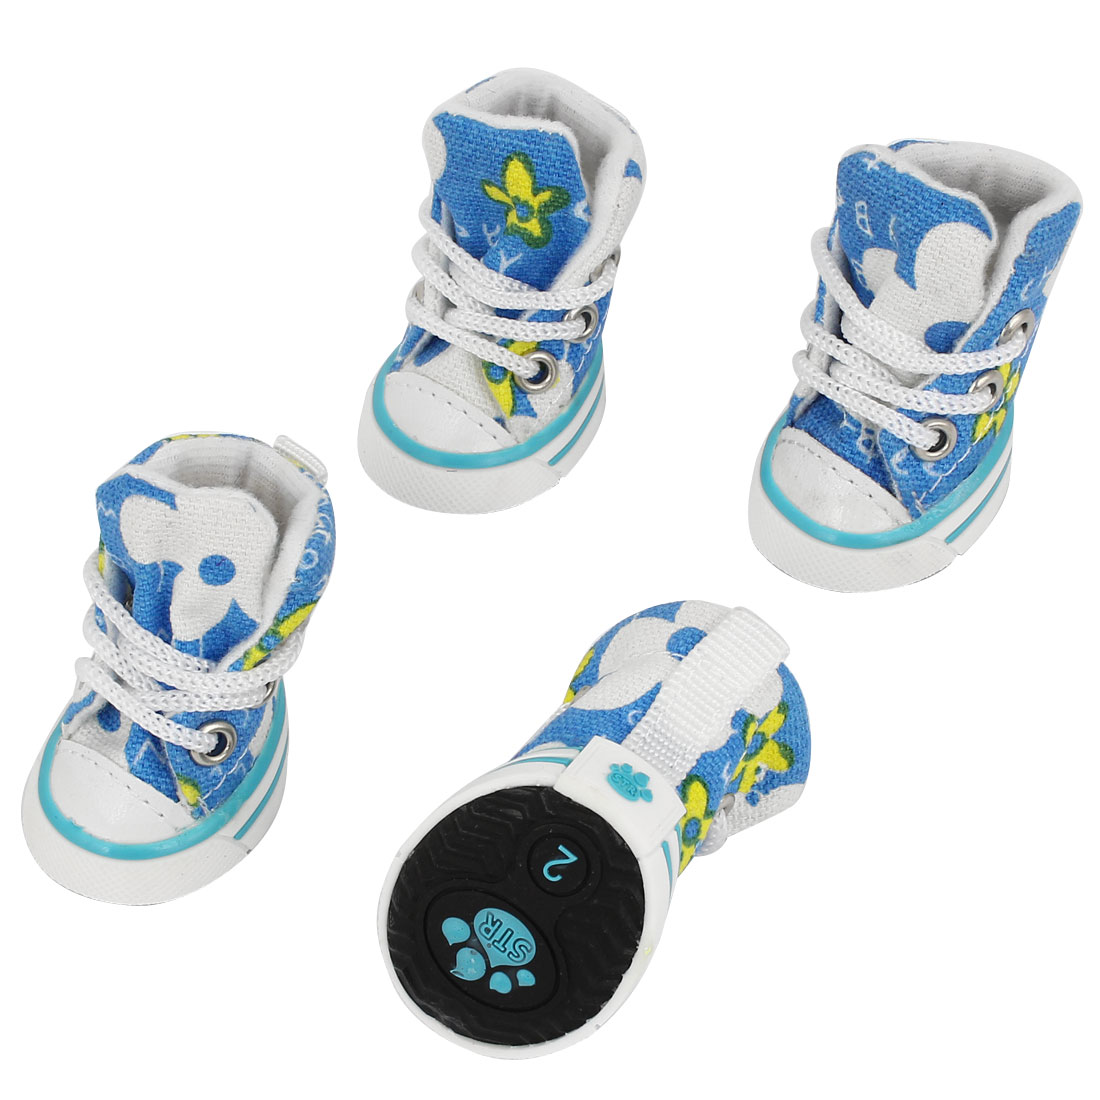 2 Pairs Nylon Shoe String Rubber Sole Flower Print Pet Dog Shoes Sneakers Blue White XS